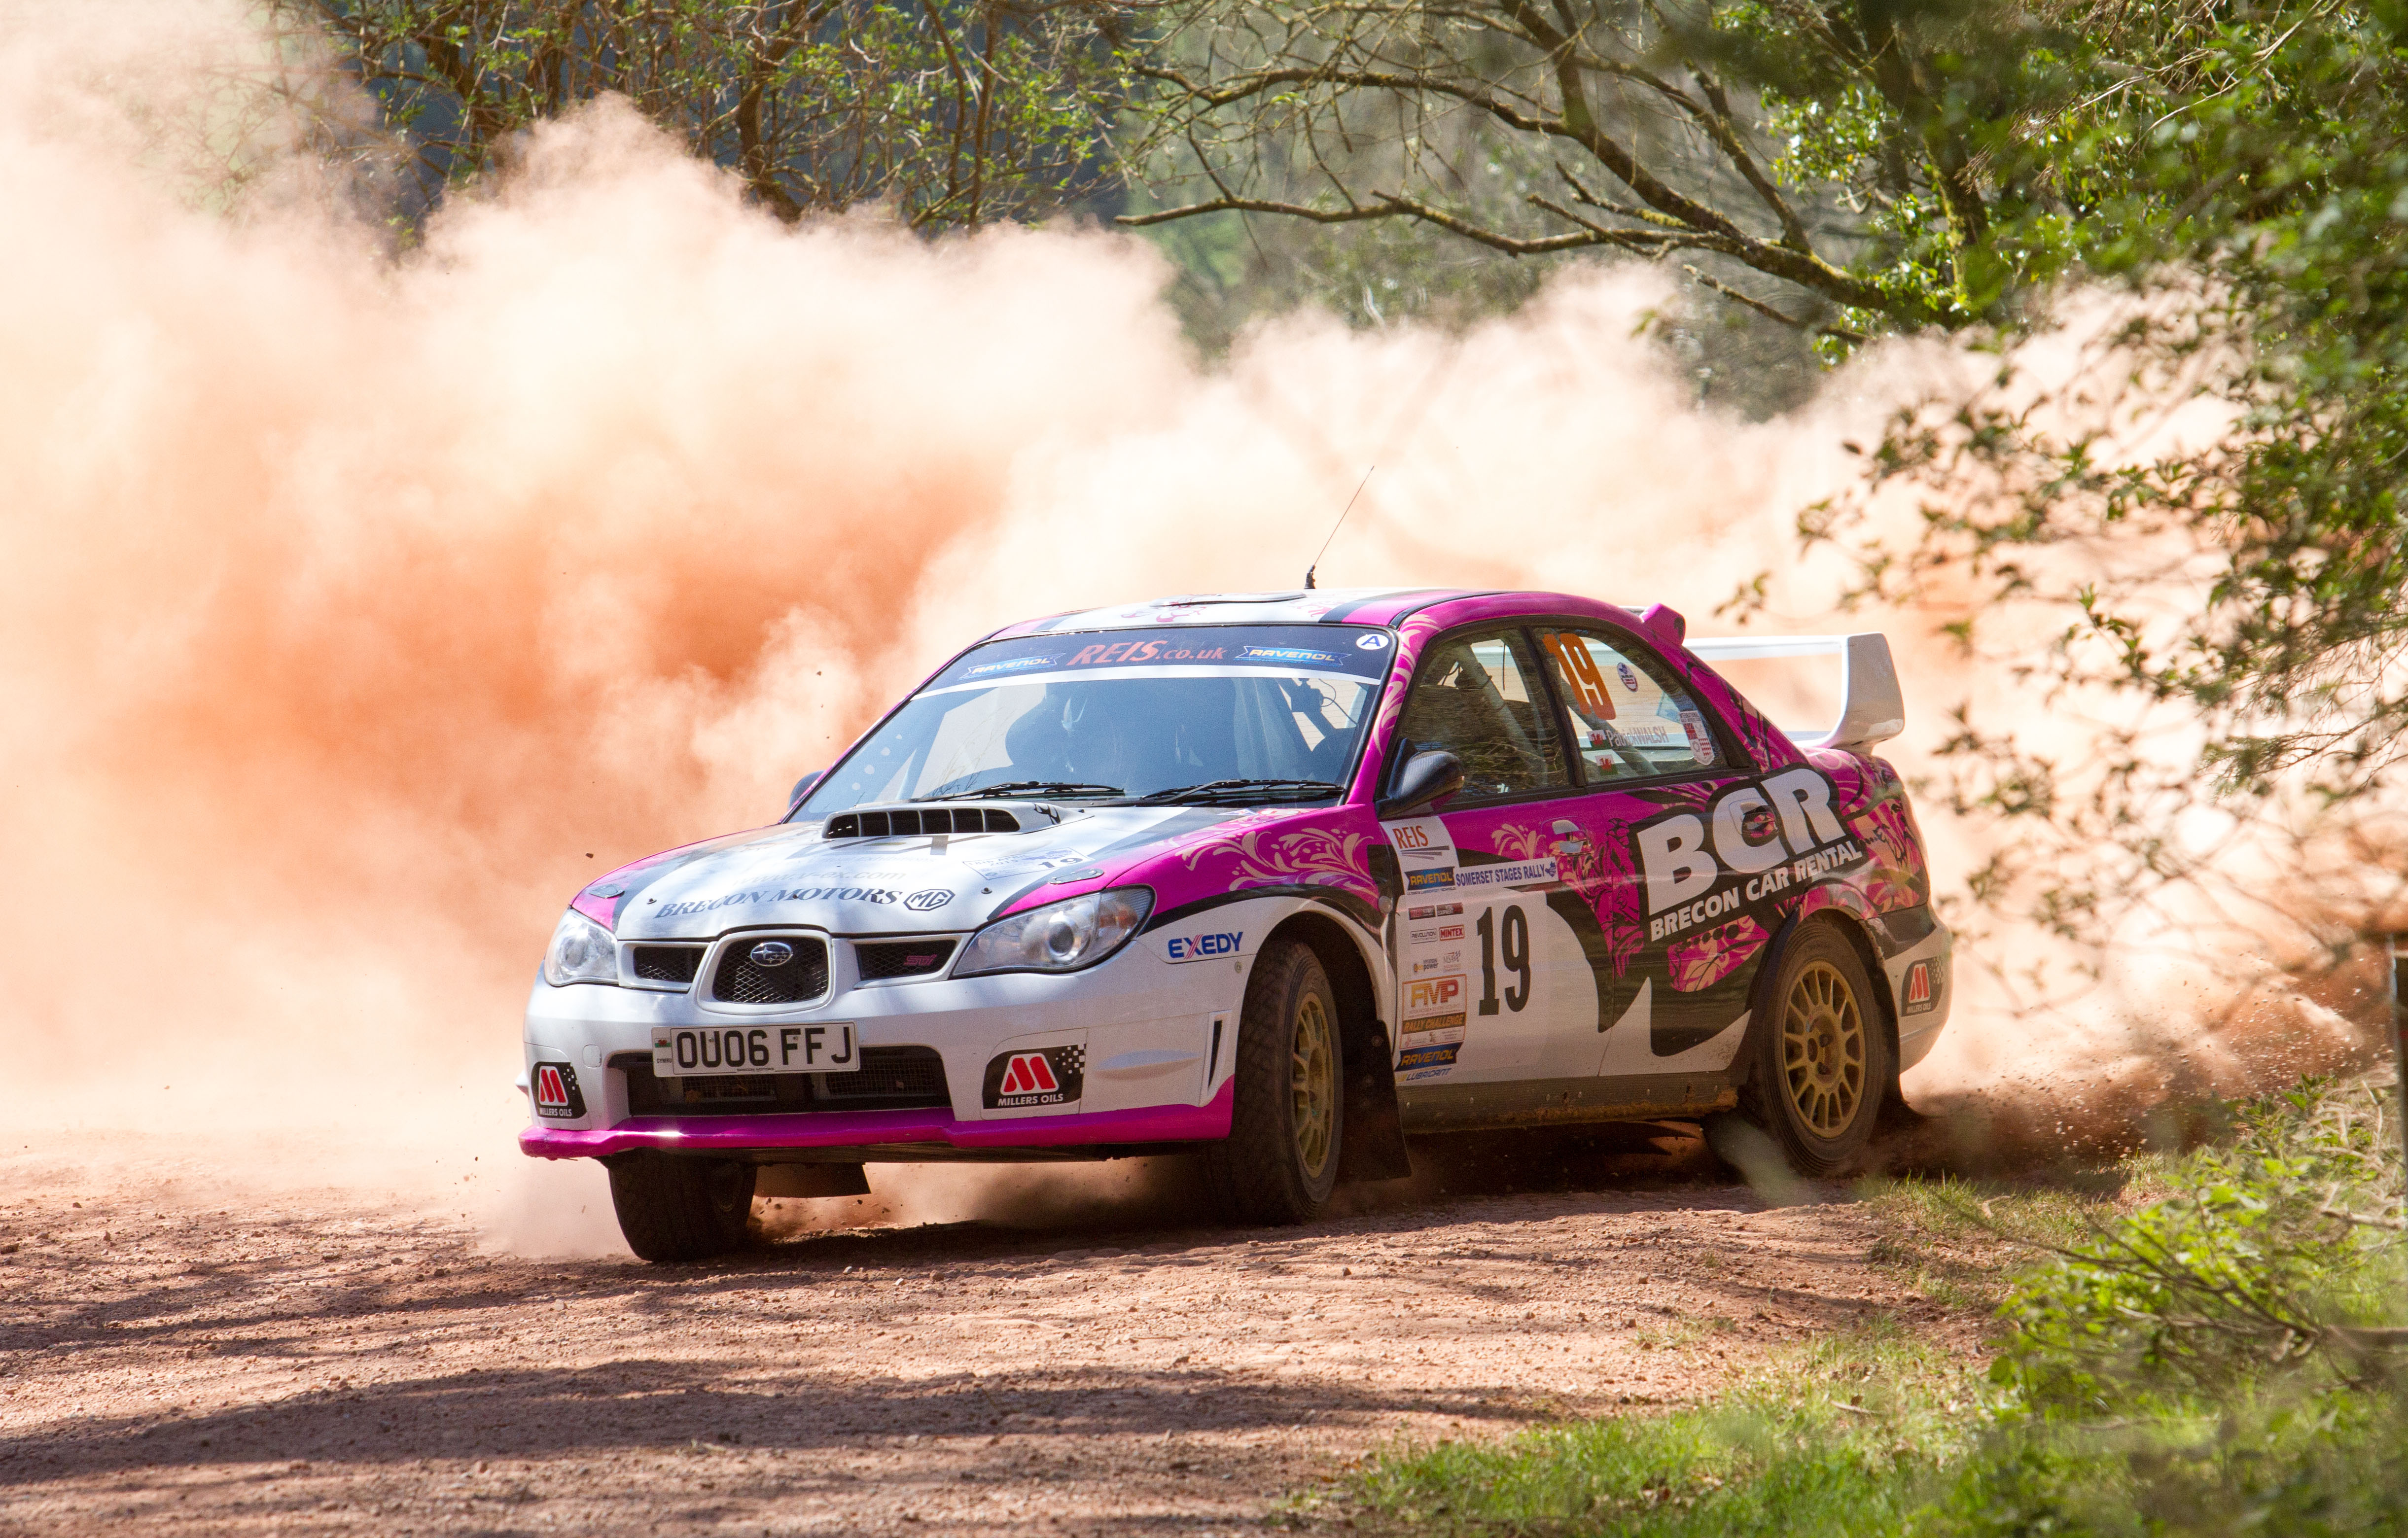 Consistent Sara Williams marks The Somerset Stages 2015 with a strong performance